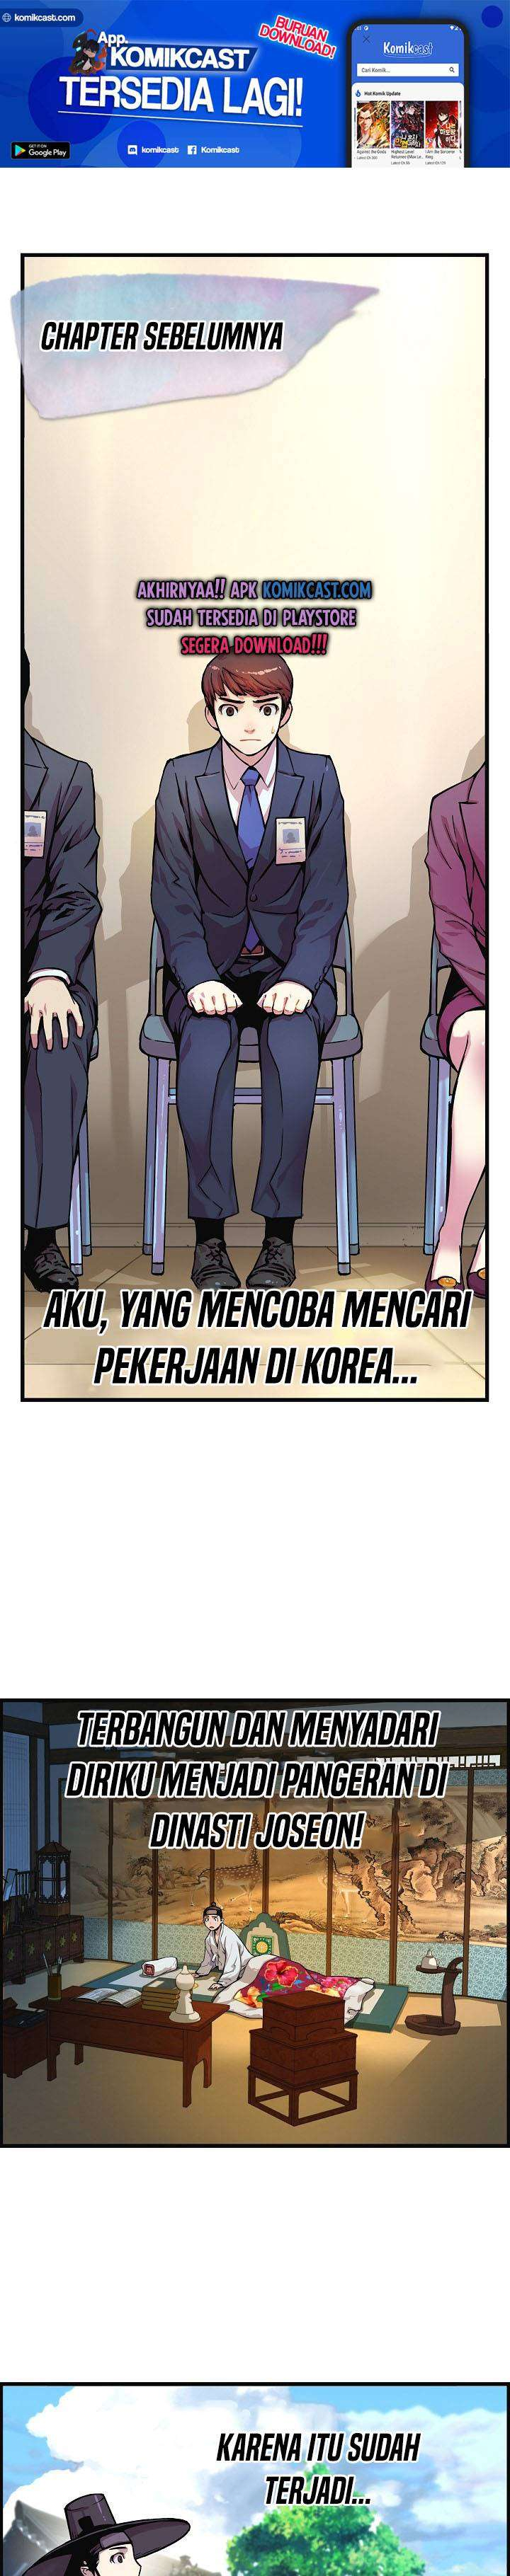 I Shall Live As a Prince Chapter 02 Bahasa Indonesia page 3